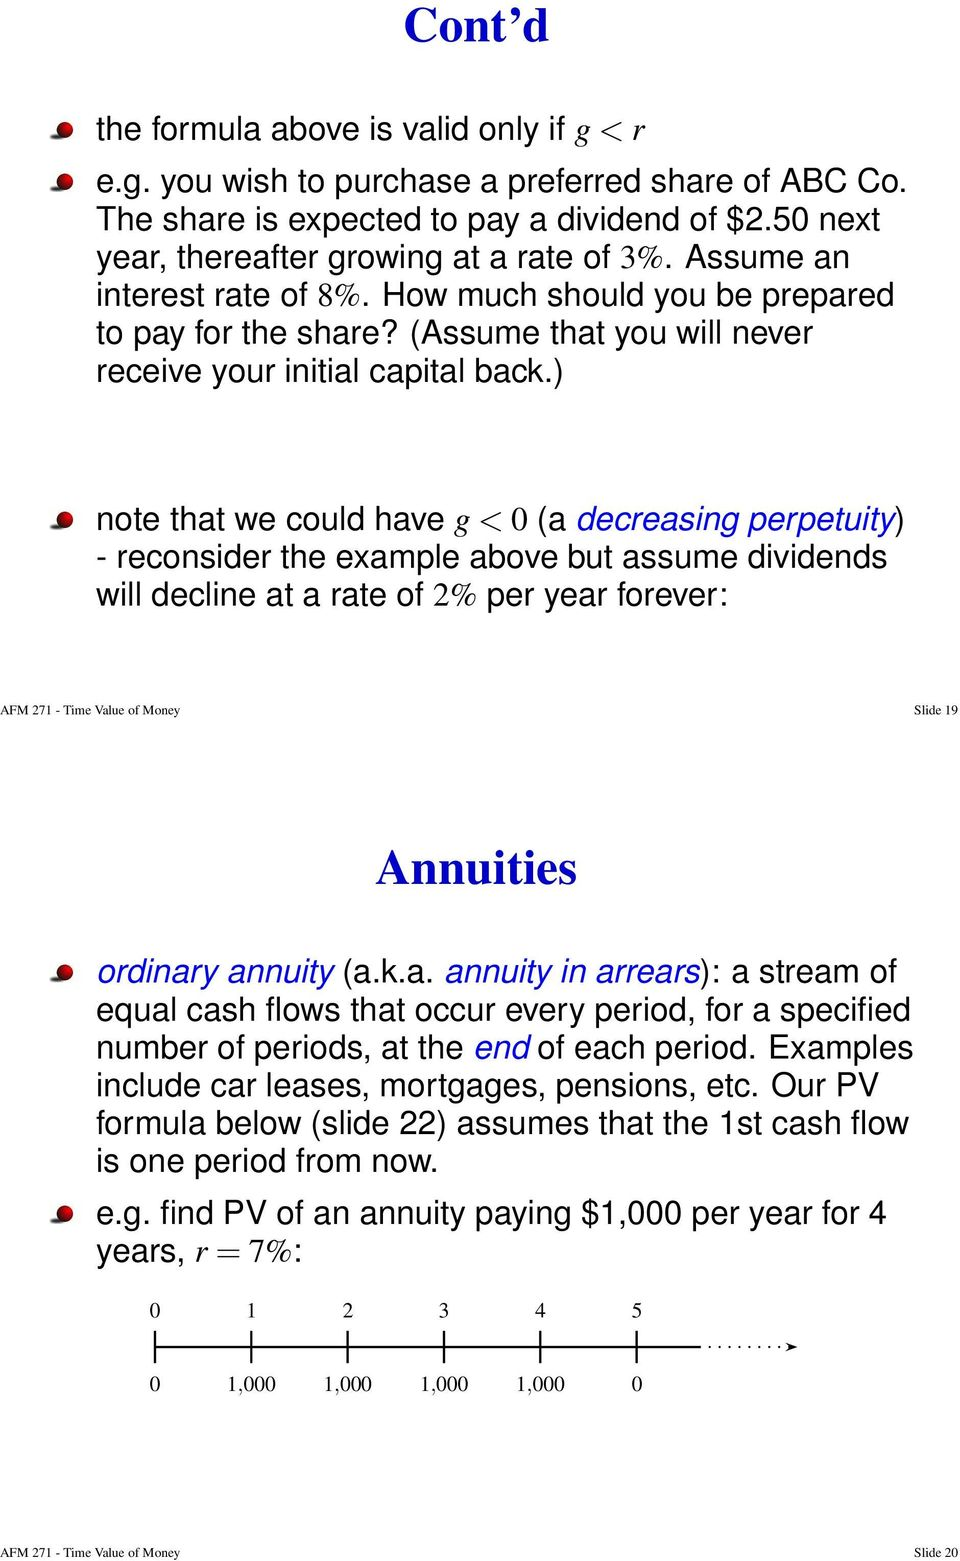 ) note that we could have g < (a decreasing perpetuity) - reconsider the example above but assume dividends will decline at a rate of 2% per year forever: AFM 271 - Time Value of Money Slide 19